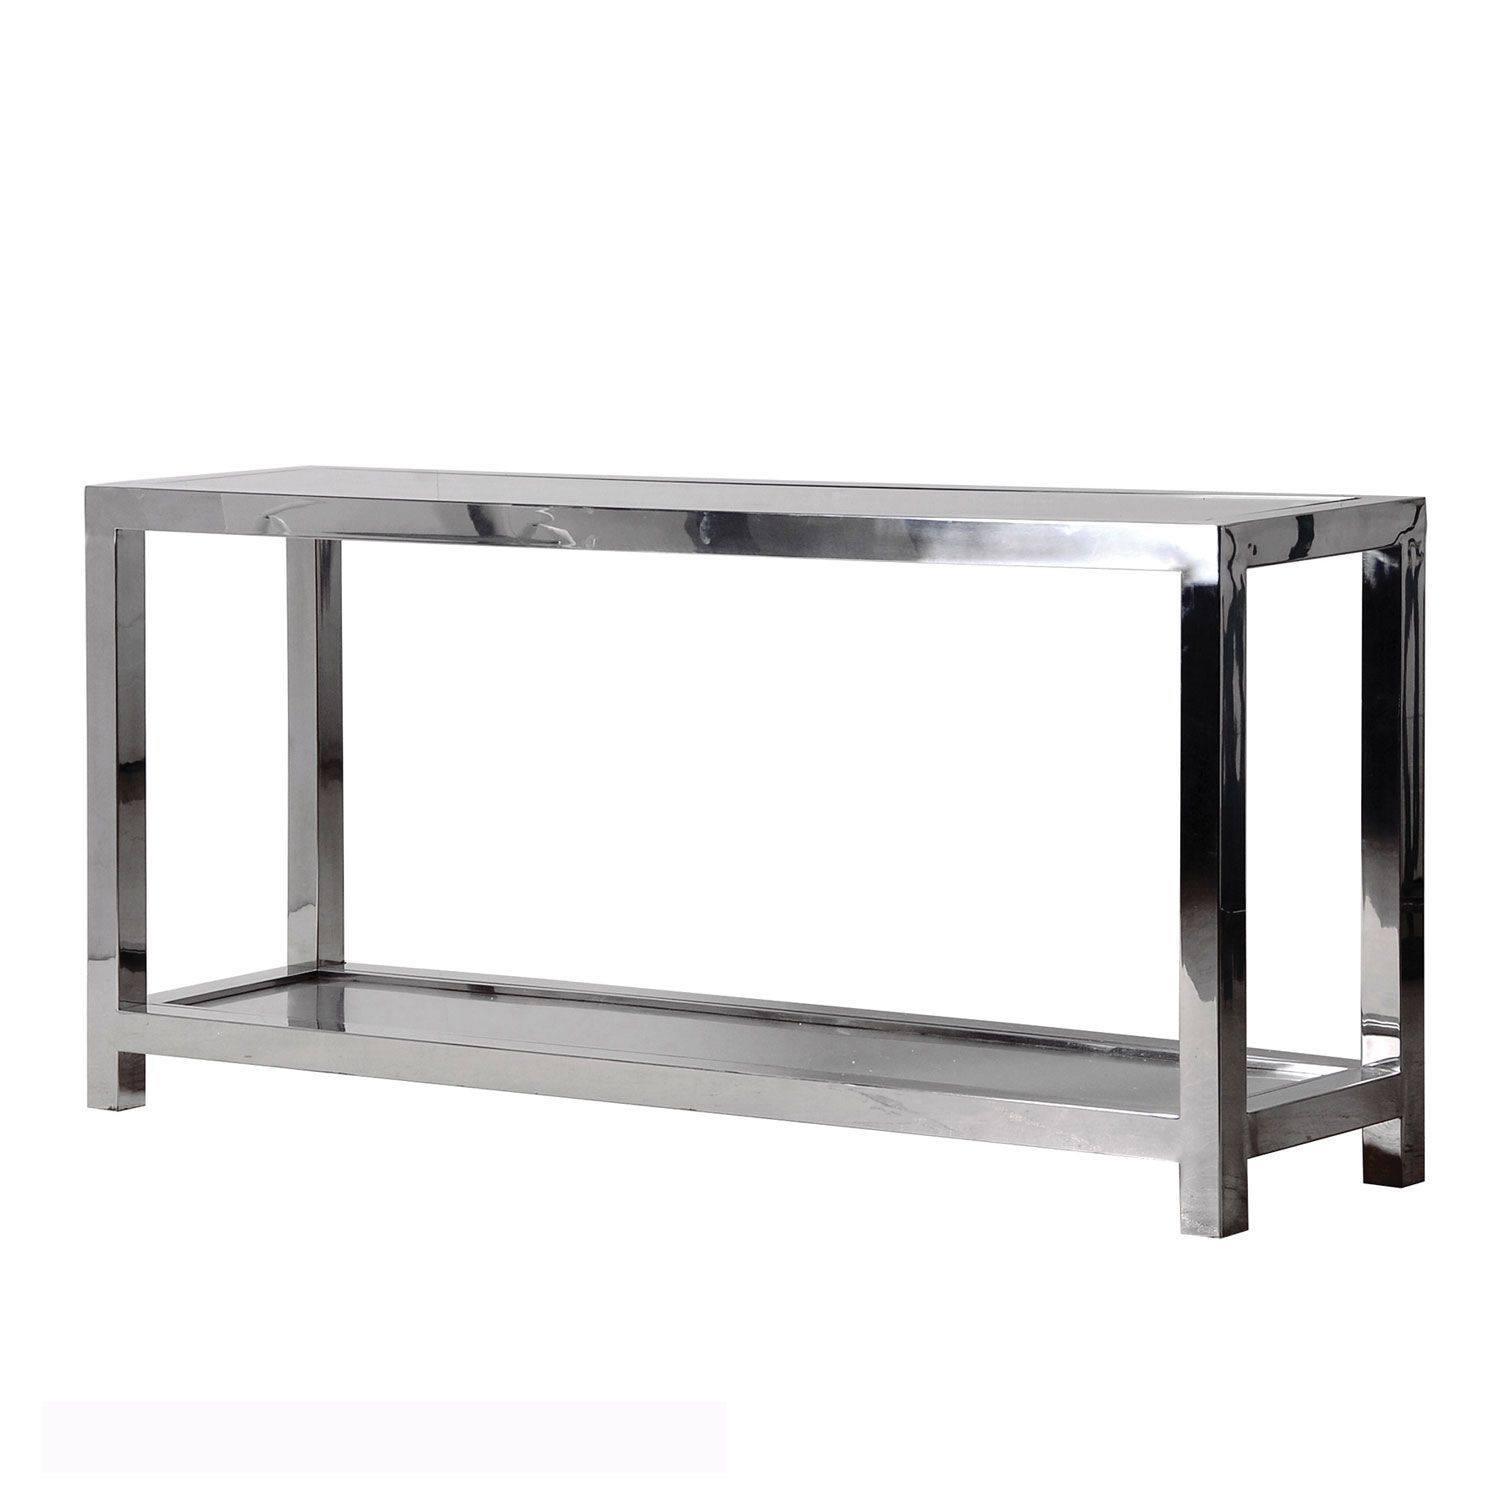 Glass console table with shelf this steel and glass end kingston console table is wonderful for a